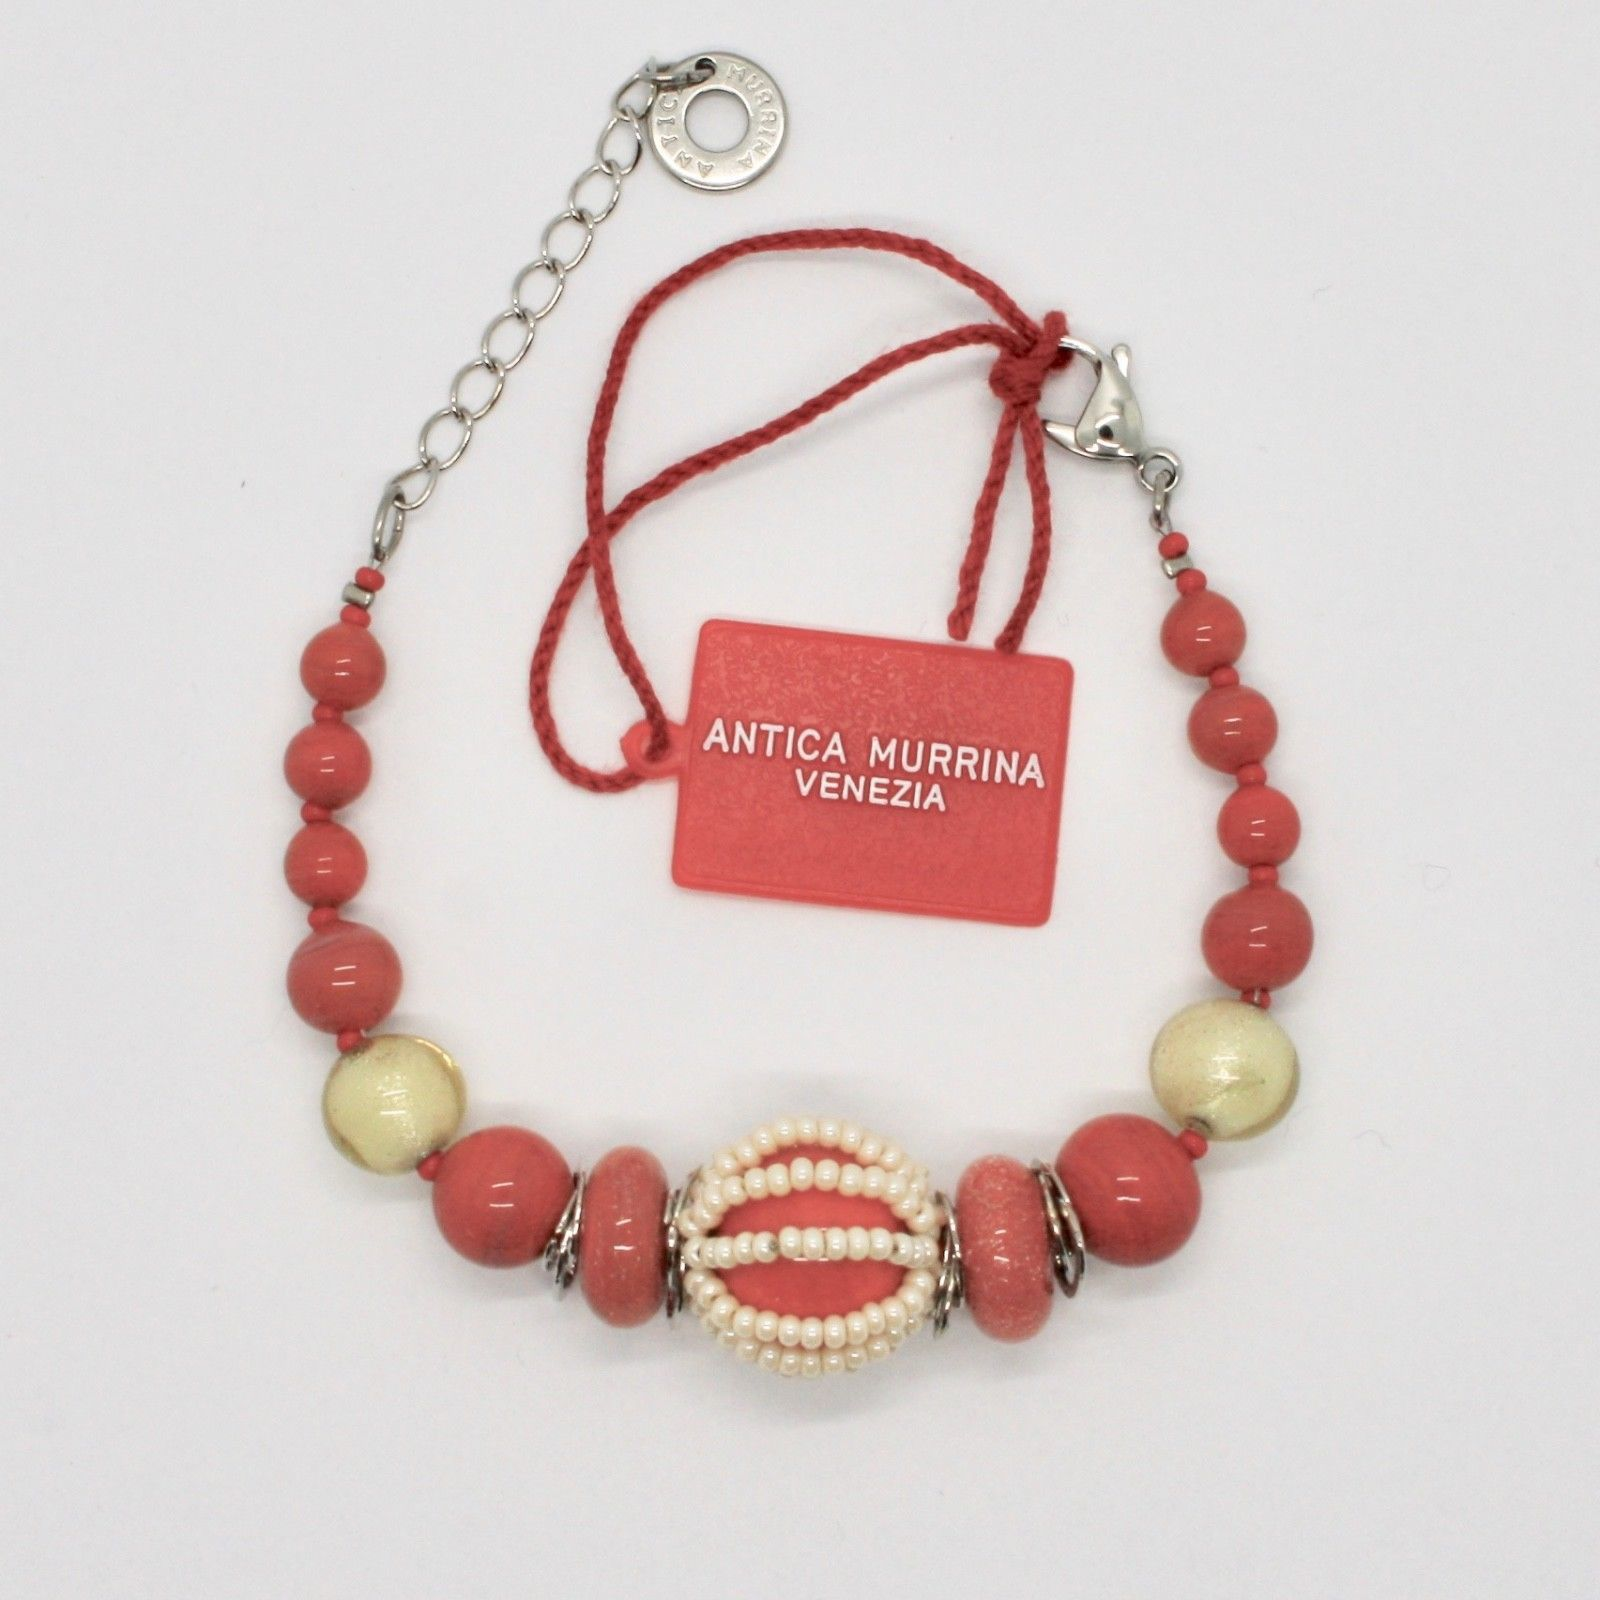 ANTICA MURRINA VENEZIA BRACELET WITH MURANO GLASS RED CORAL BEIGE BR742A25